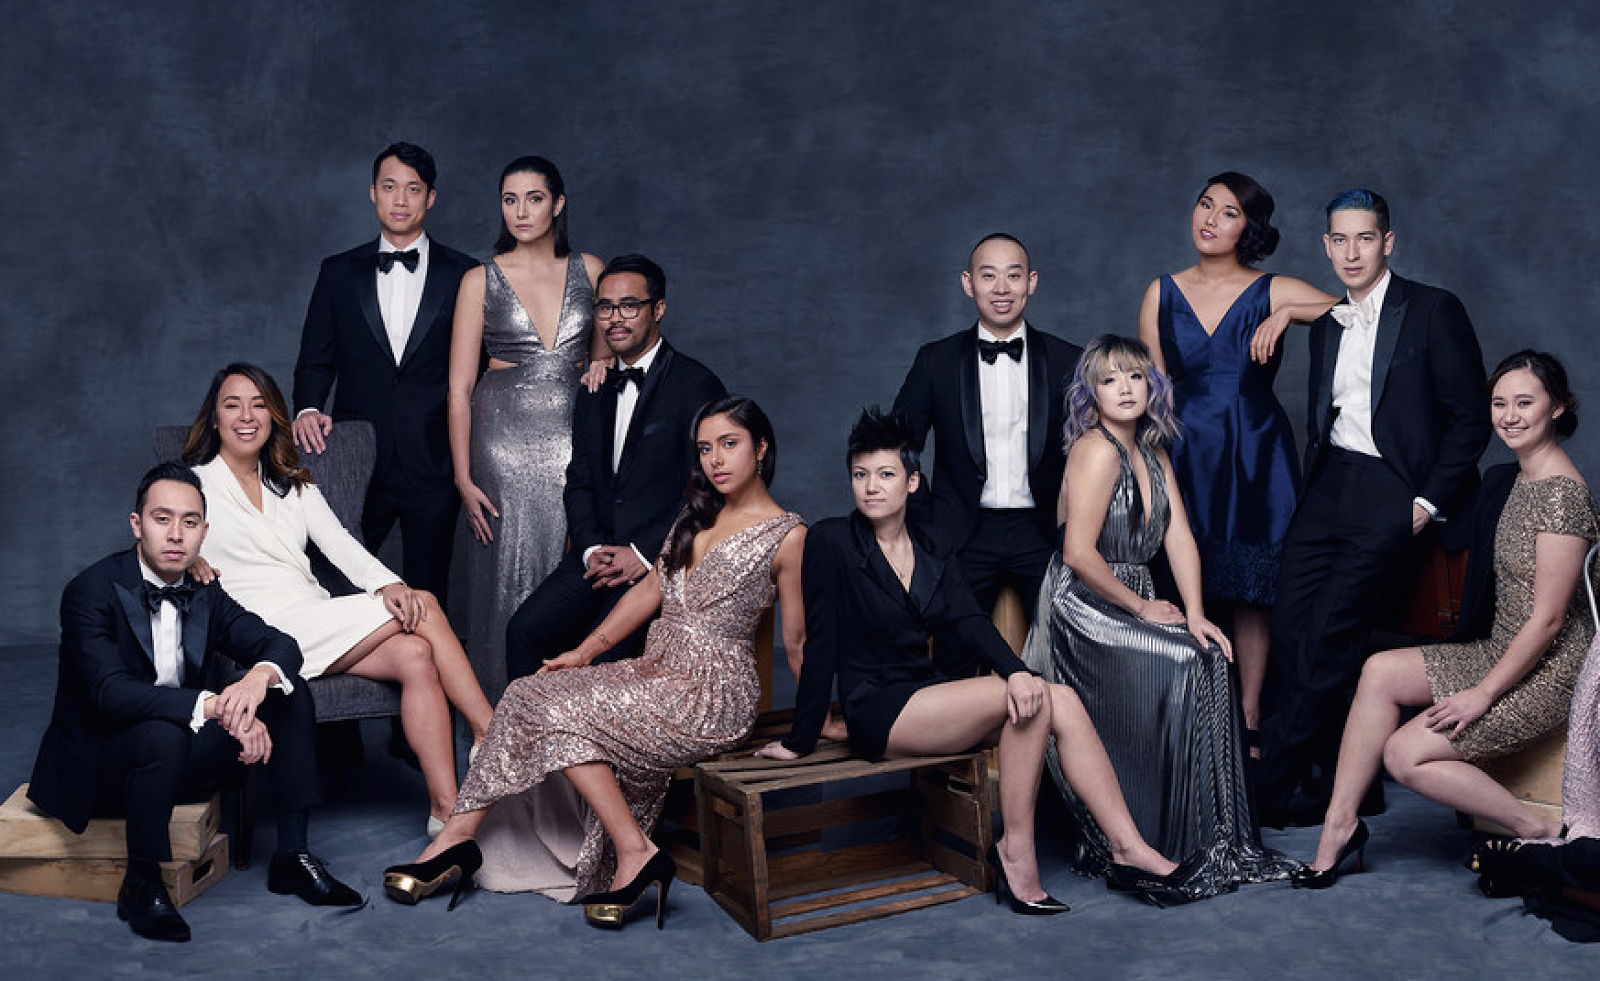 Oscarssowhite  >> Views From The Edge: Buzzfeed: Asian/Americans mimic ...